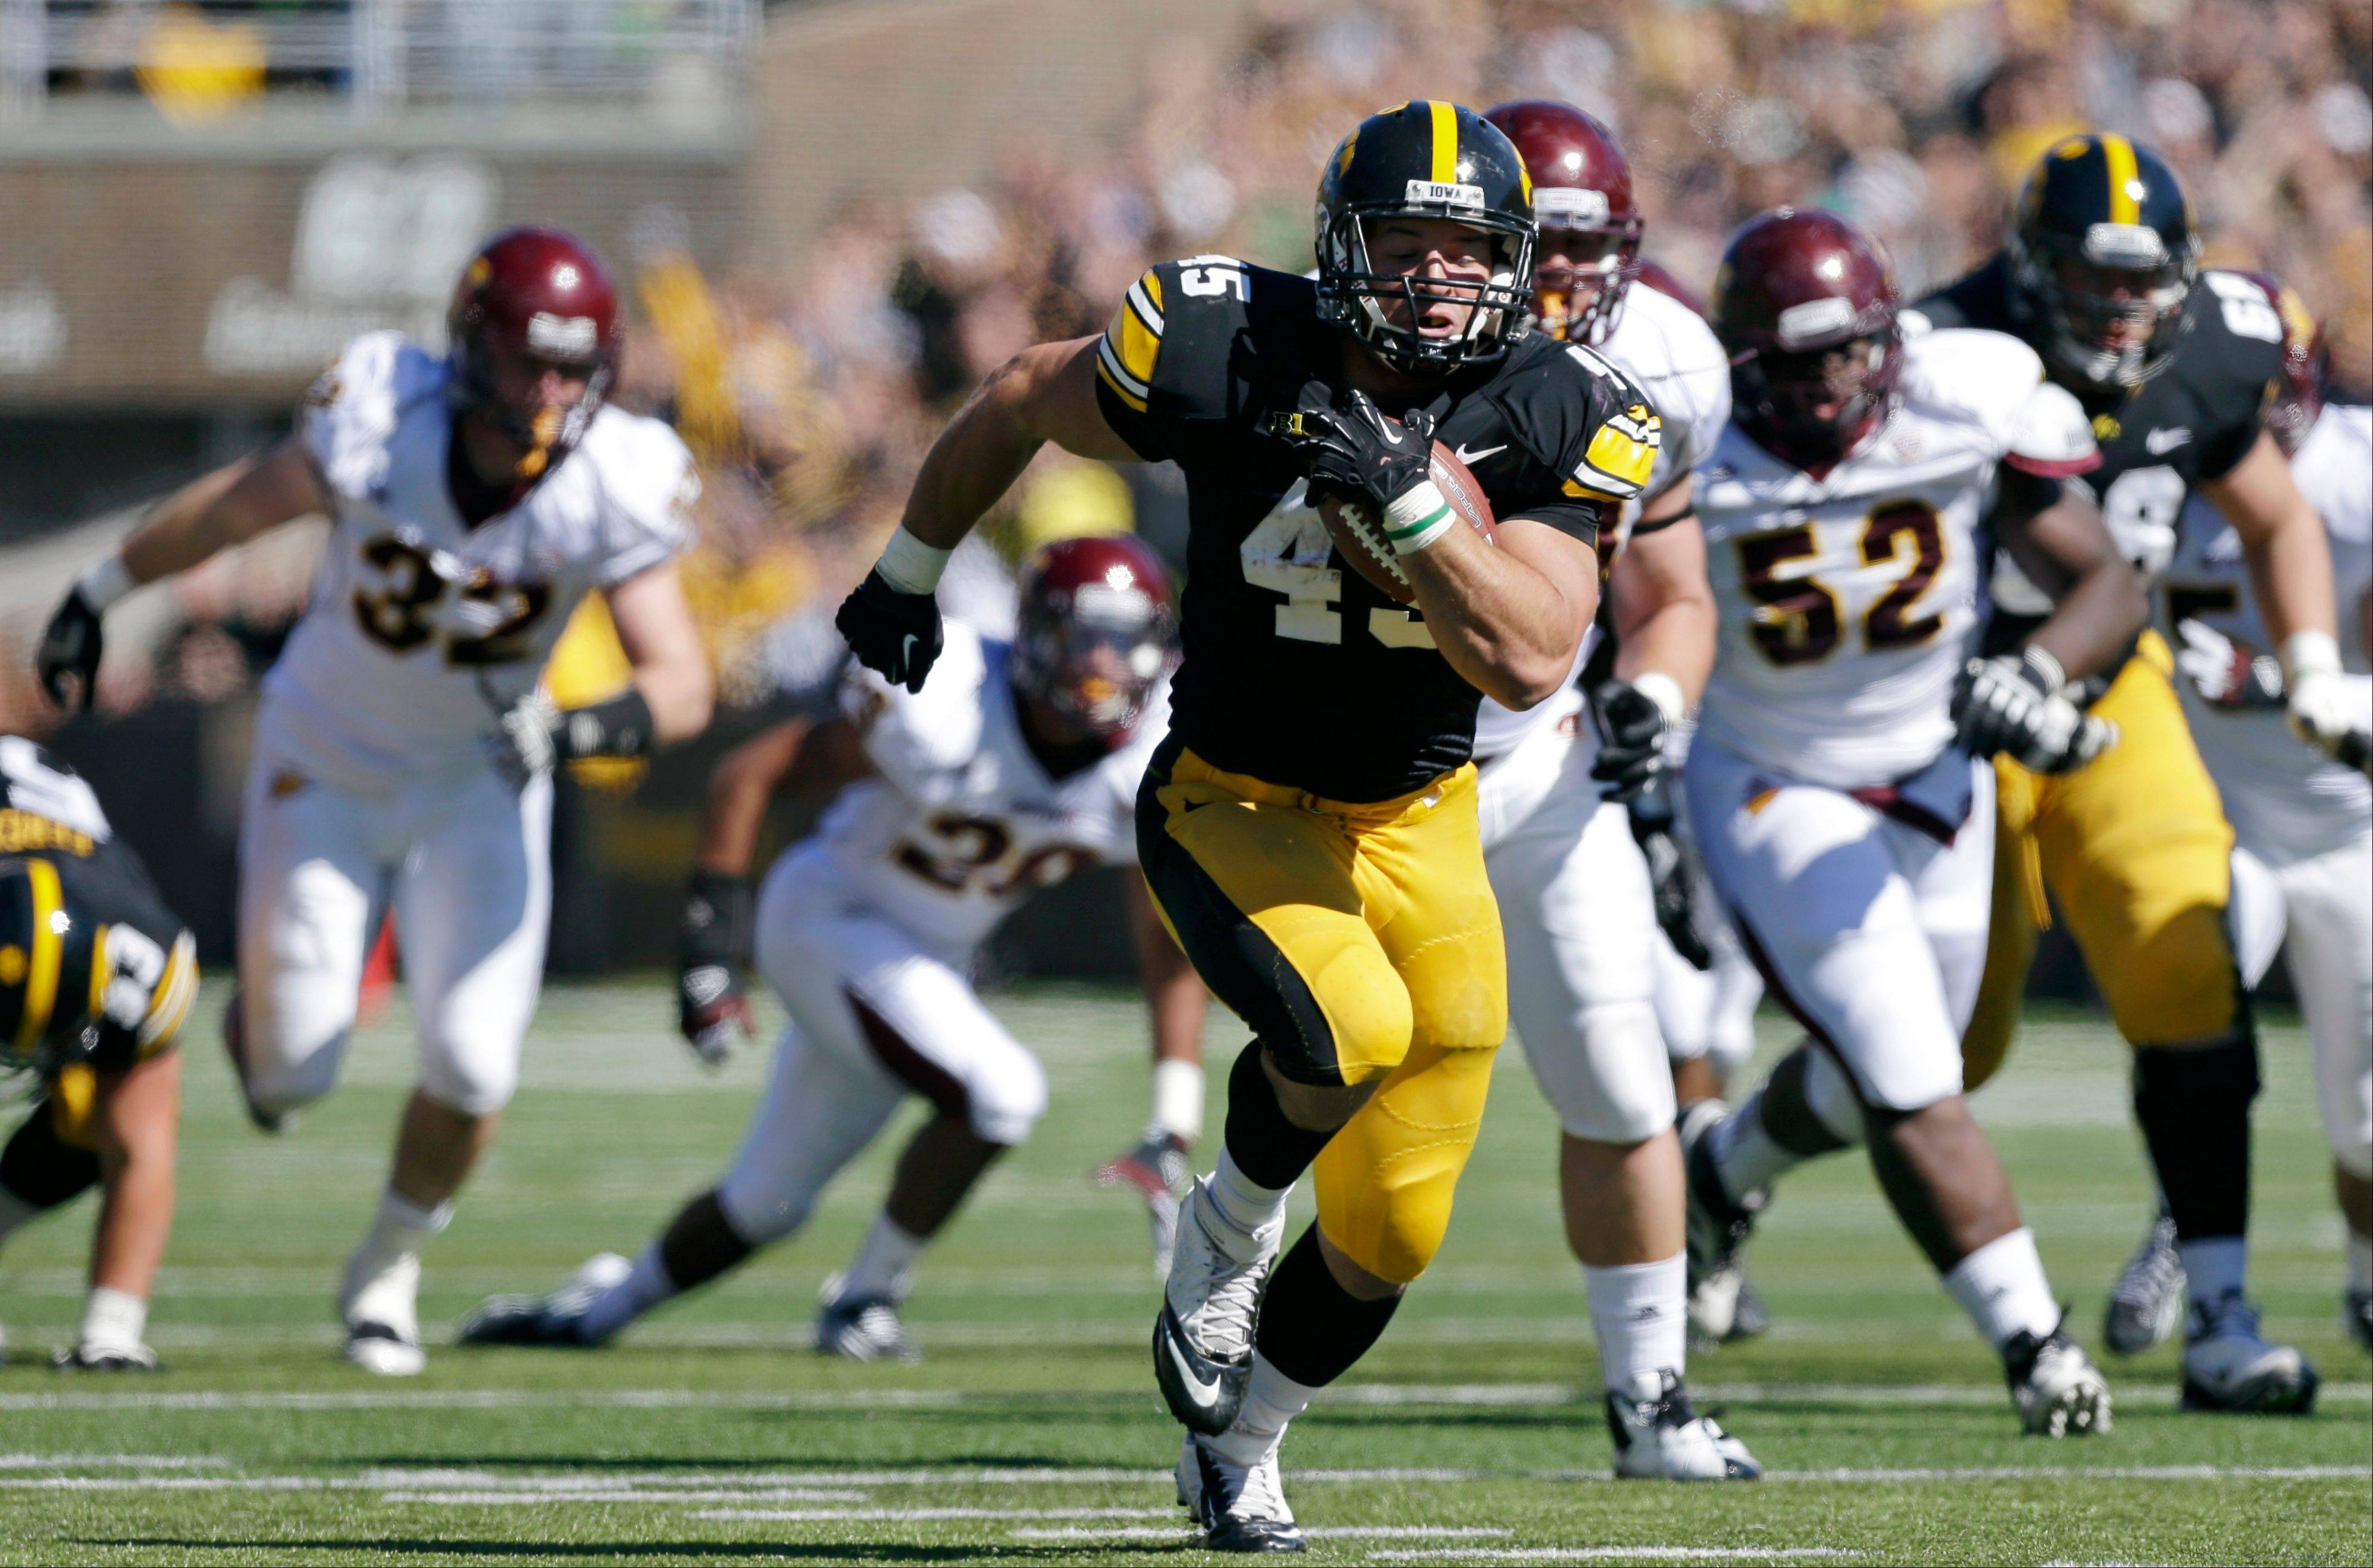 FILE - In this Sept. 22, 2012 file photo, Iowa fullback Mark Weisman runs for a 34-yard touchdown run during the first half of an NCAA college football game against Central Michigan, in Iowa City, Iowa. One of the few bright spots for Iowa last season was the emergence of Weisman, a former walk-on fullback who showed he could be among the Big Ten's best ball carriers _ when healthy. (AP Photo/Charlie Neibergall, File)